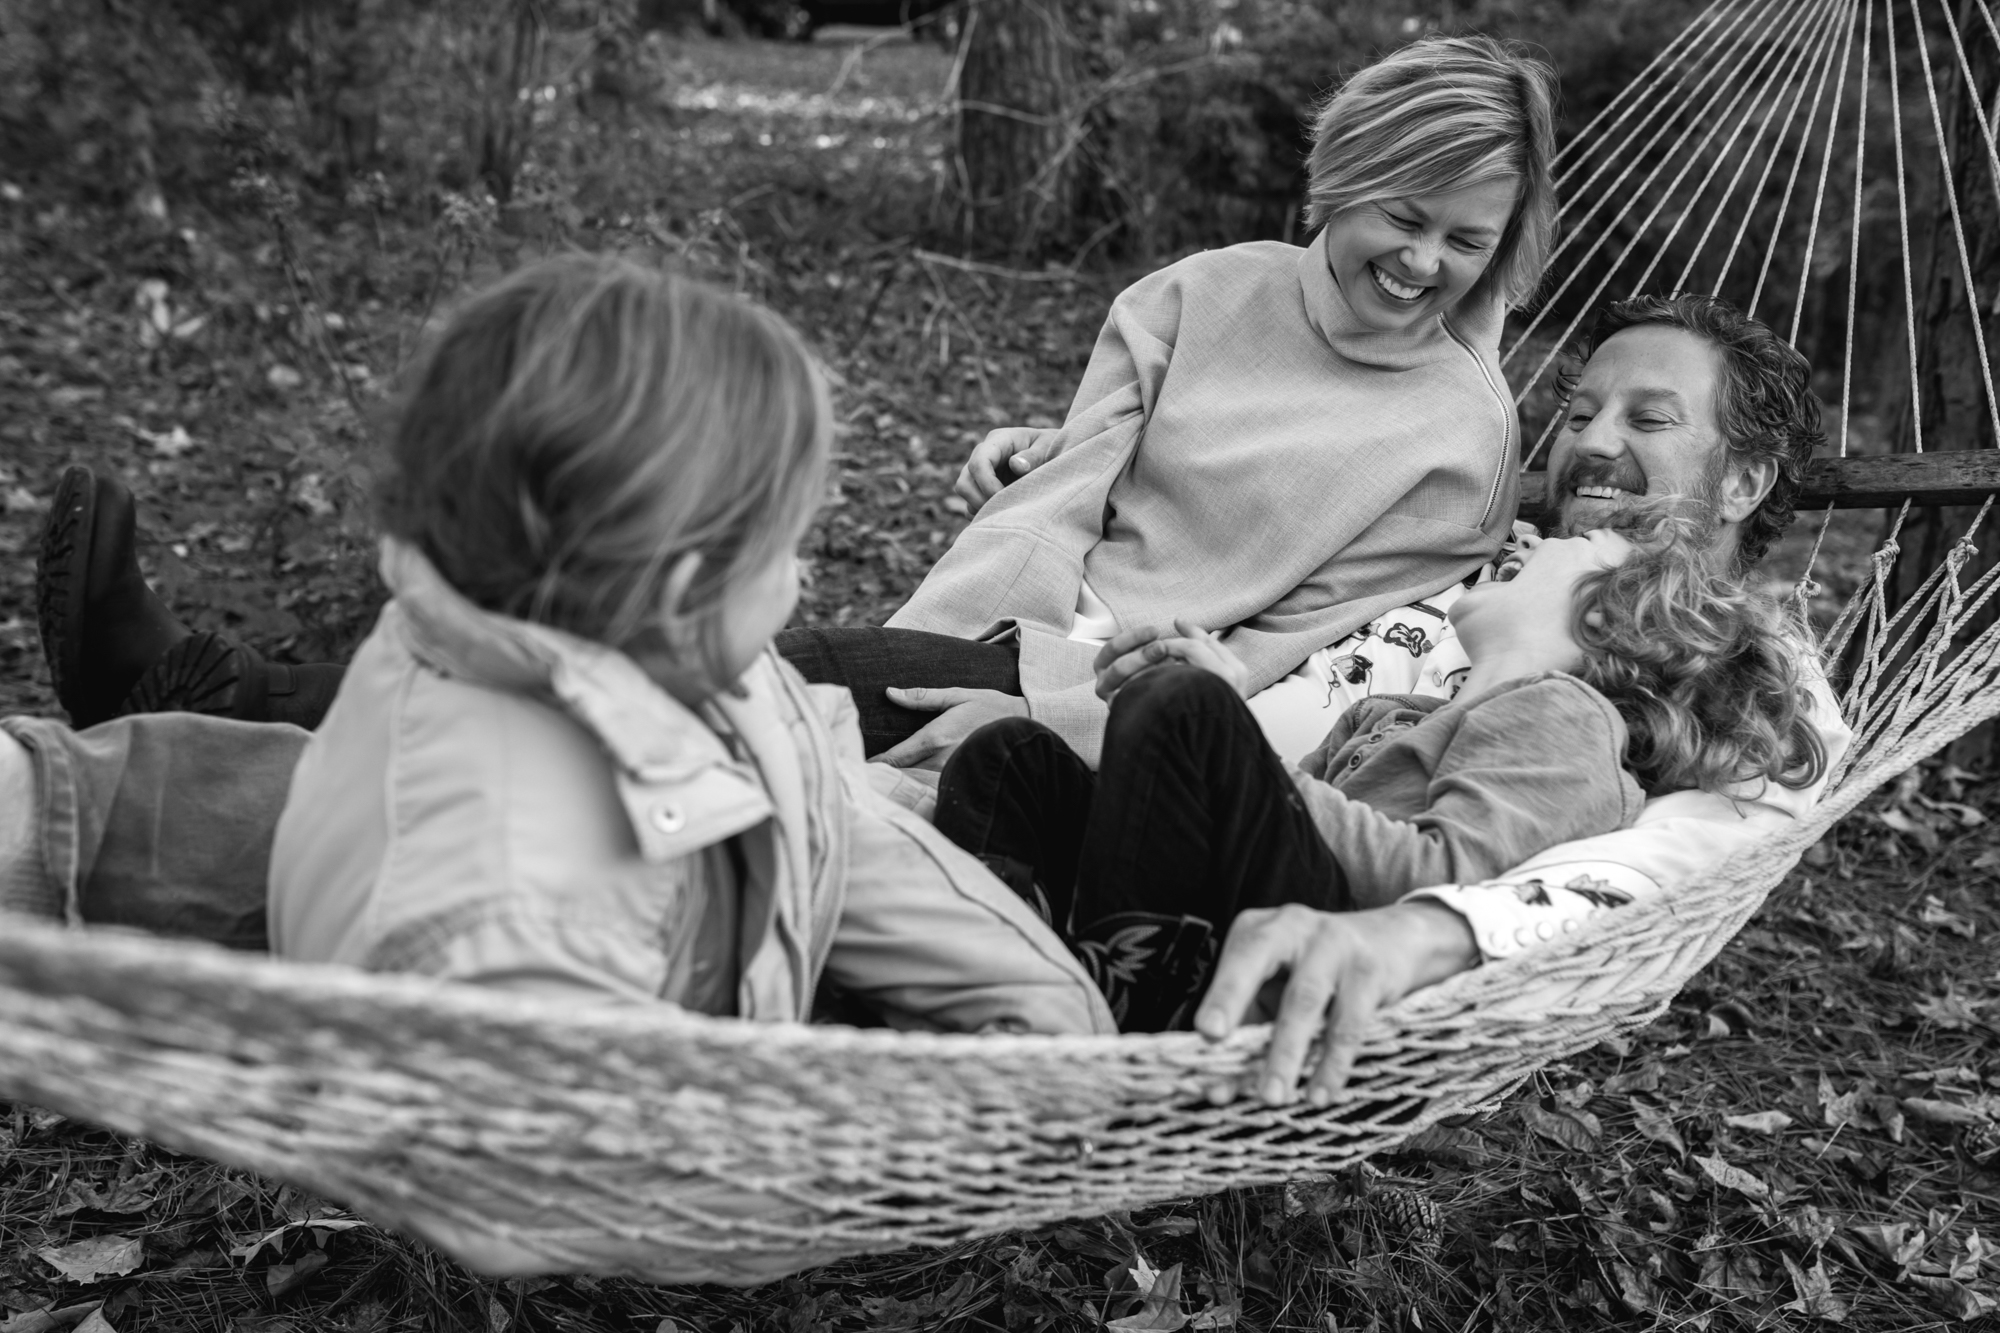 A family laughs and lies on a hammock